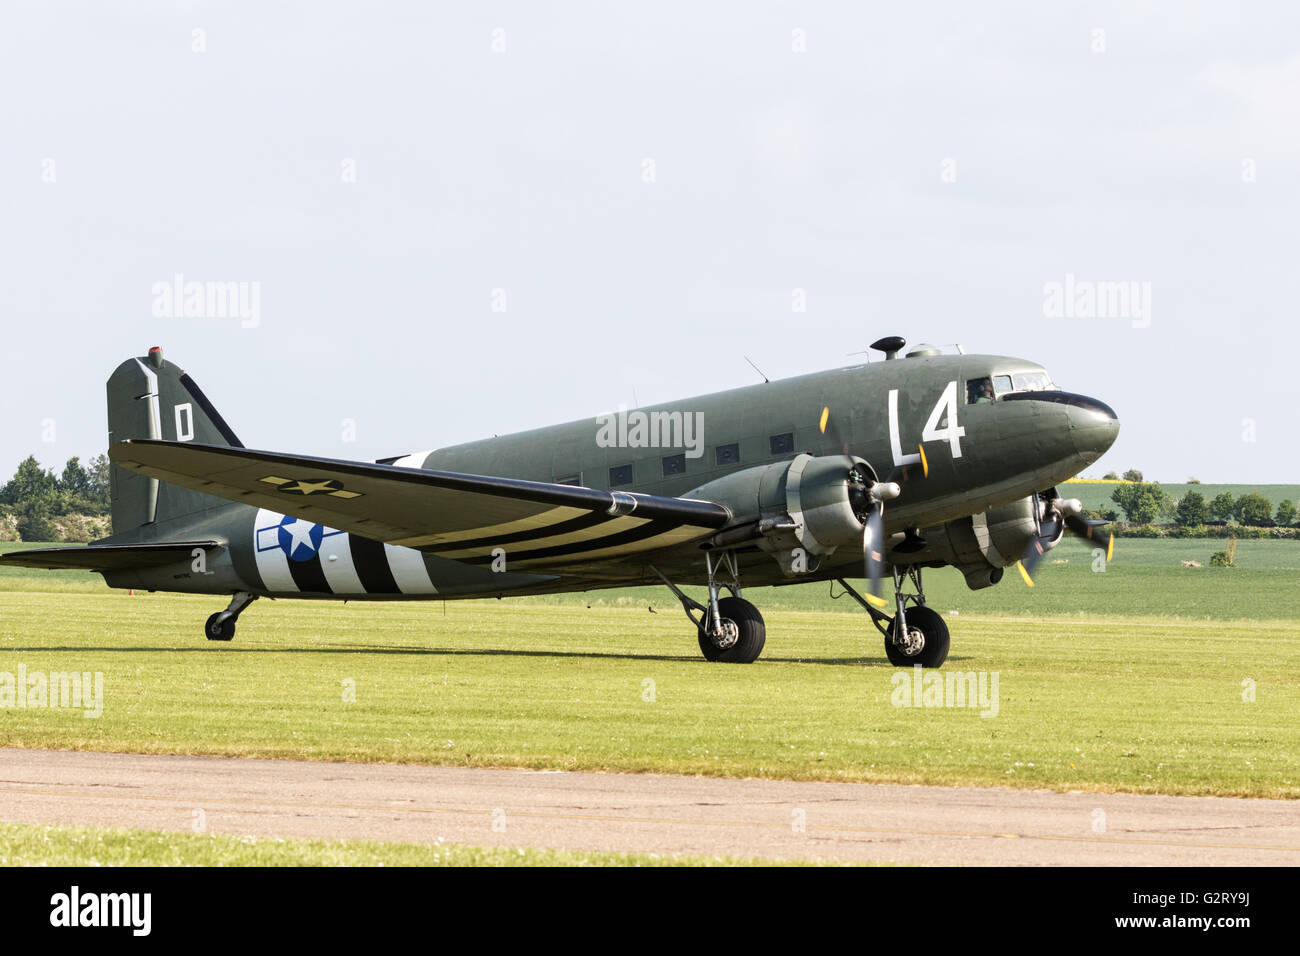 A Douglas C-47A Skytrain airplane taxiing, Duxford Imperial War Museum Airport, Cambridge UK - Stock Image